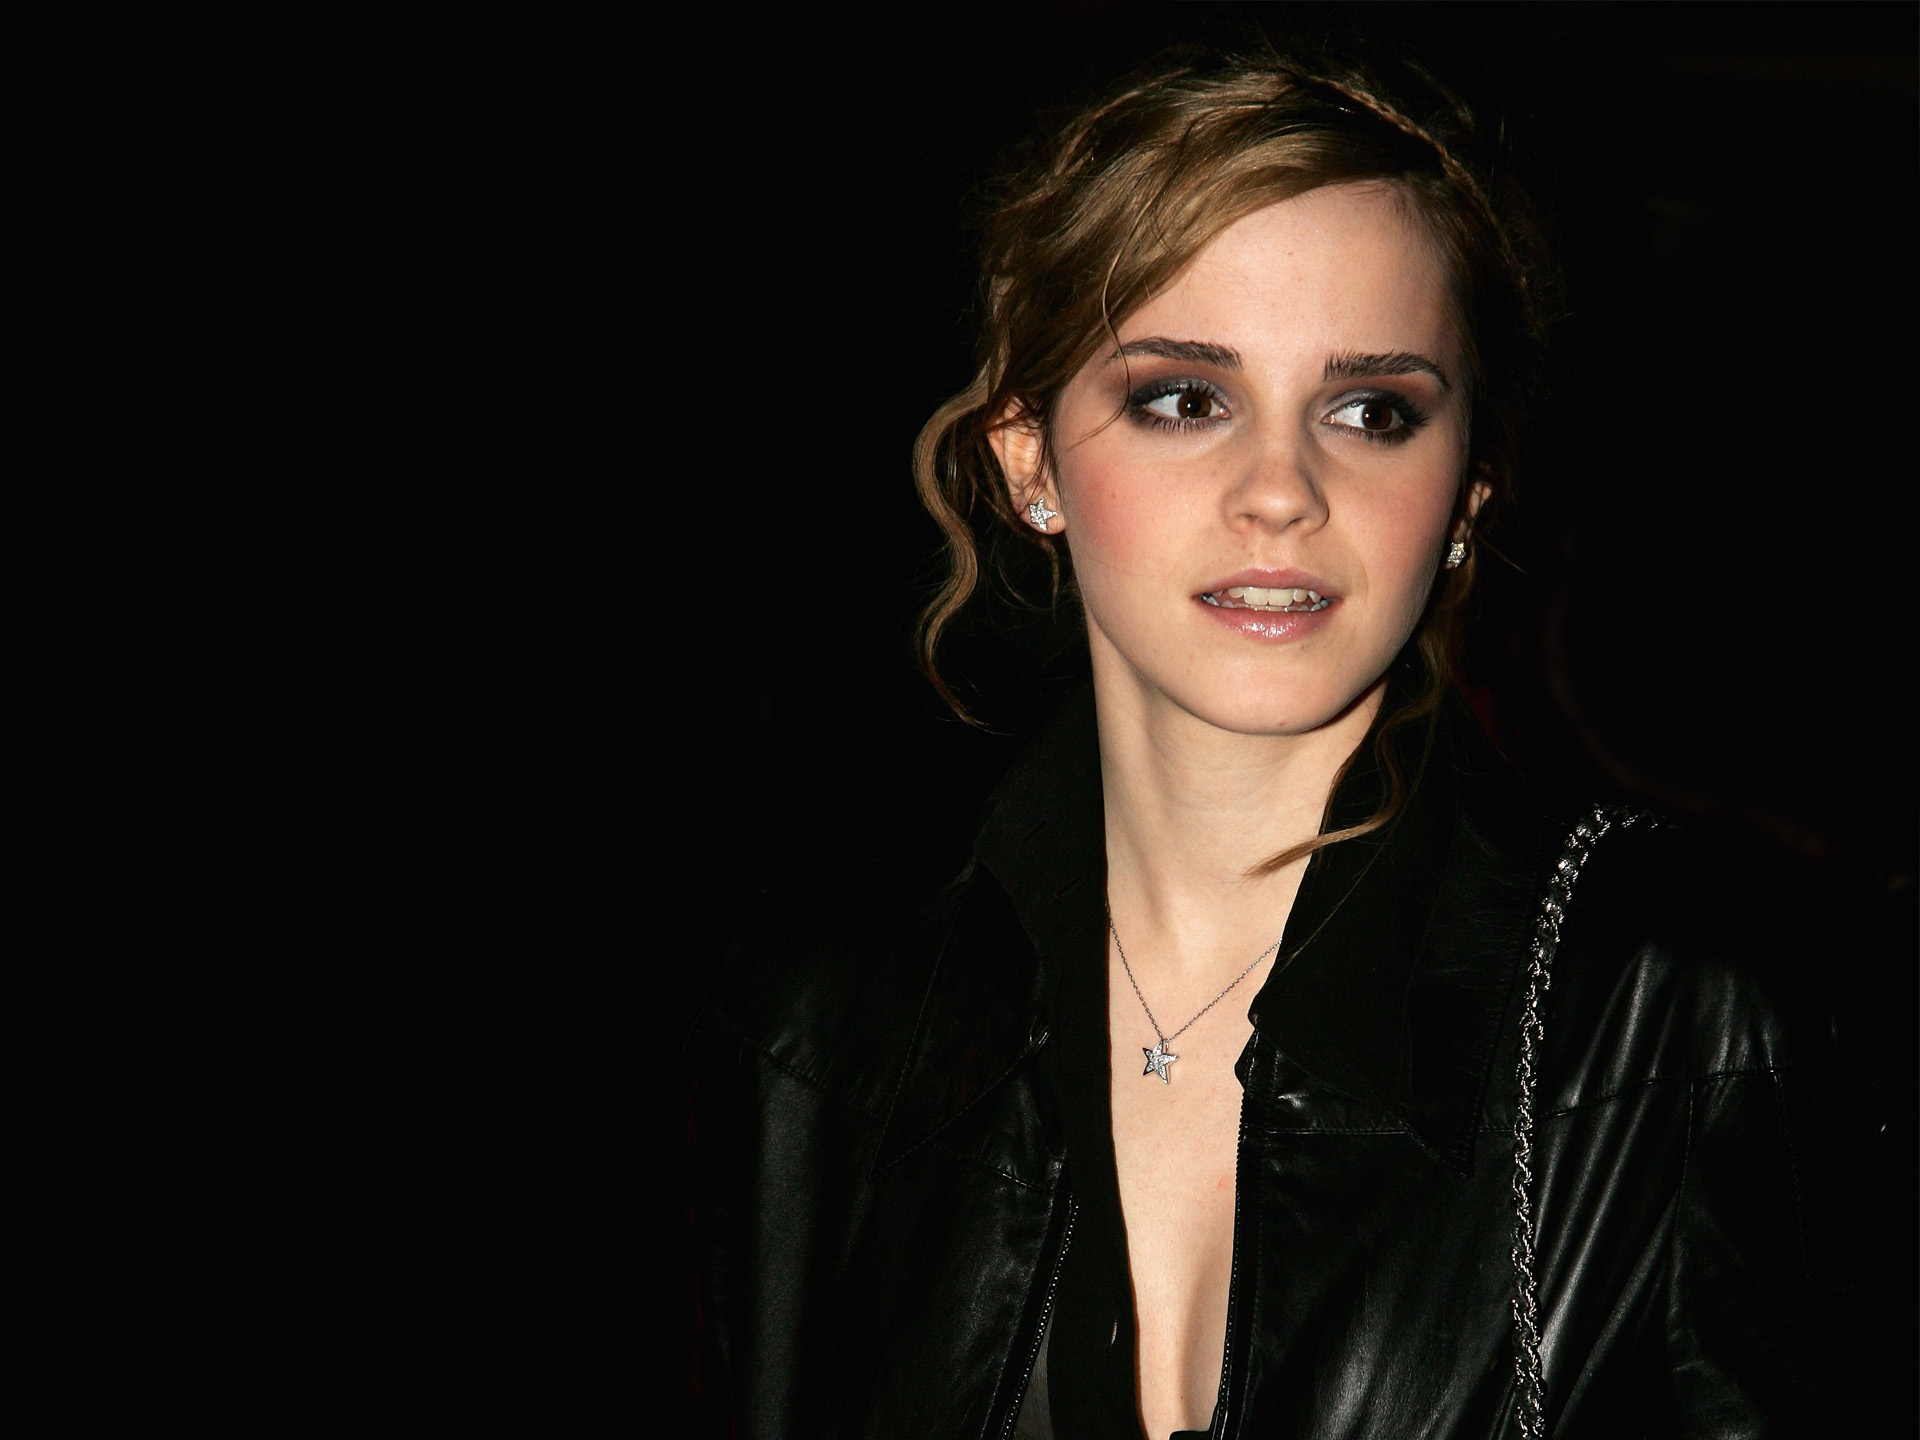 Emma Watson in Black Coat wallpaper